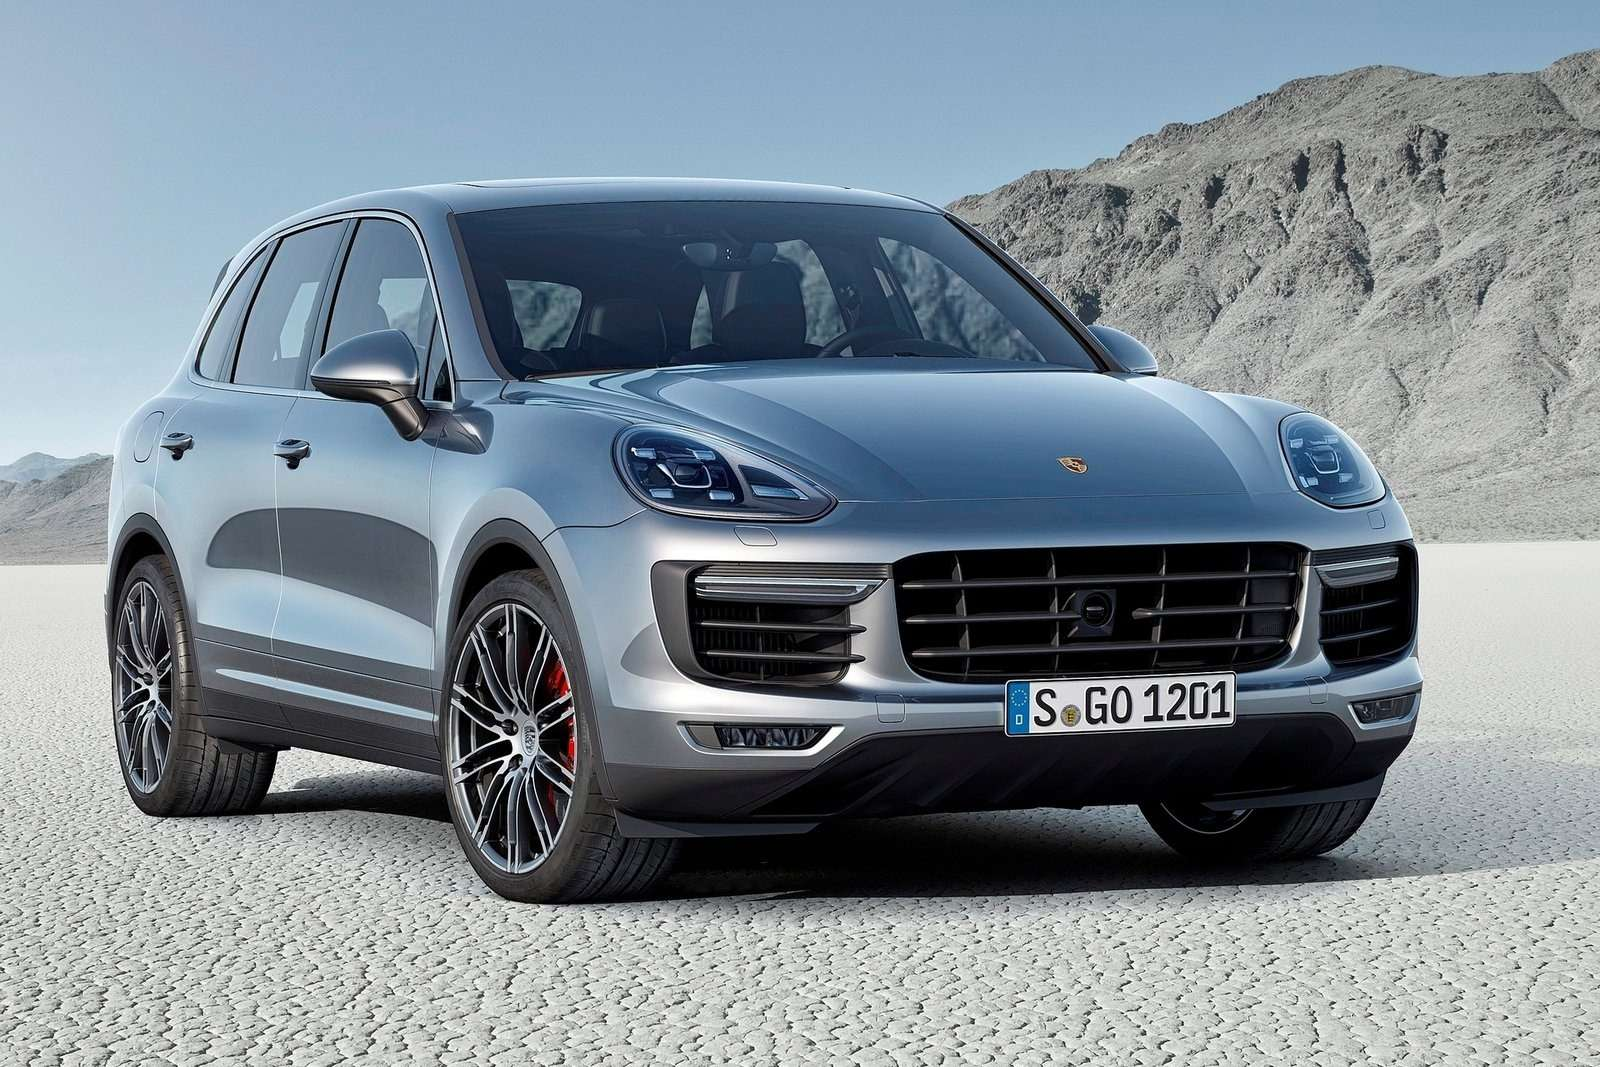 Porsche-Cayenne_2015_1600x1200_wallpaper_01